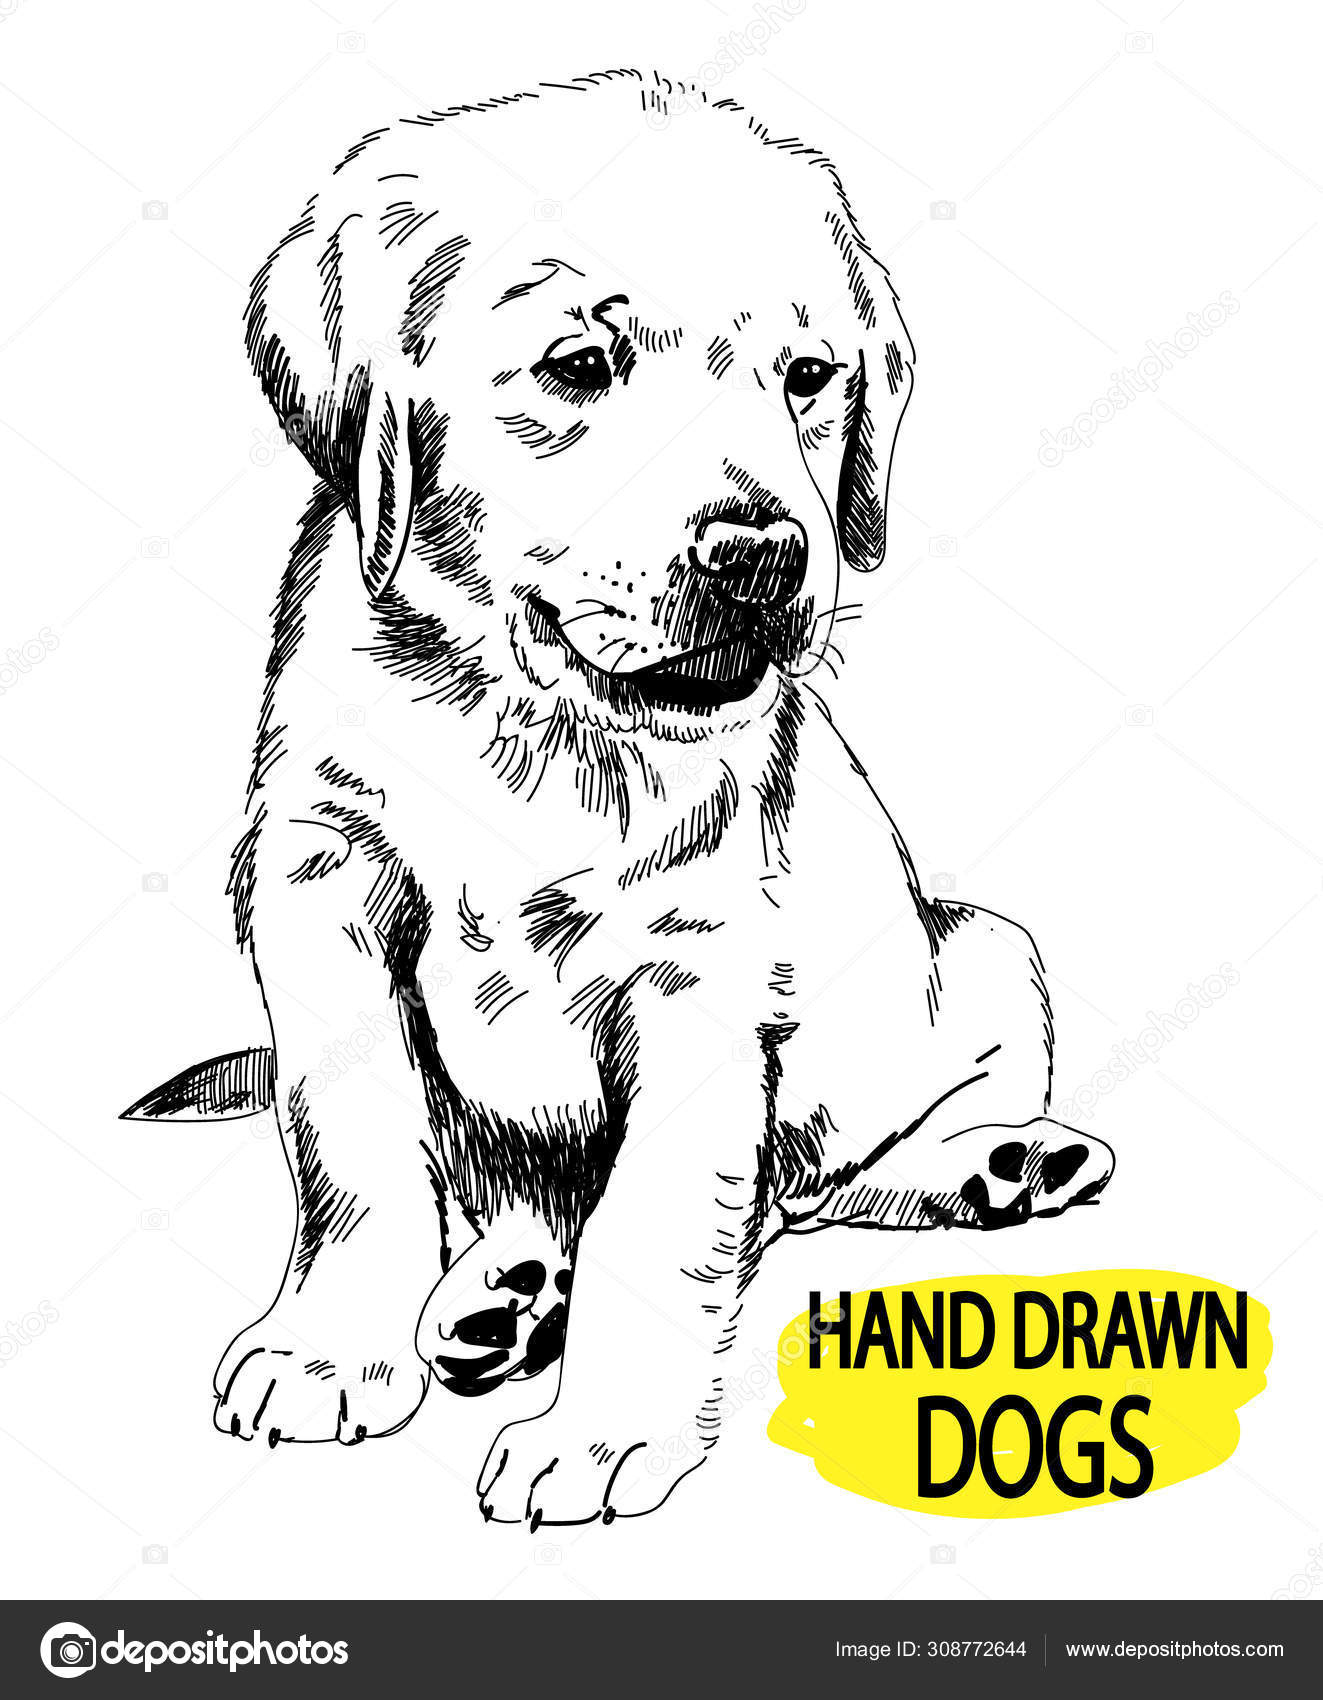 Labrador Puppy Sitting Drawing Hand Sketch Stock Vector C Rant Goi 308772644